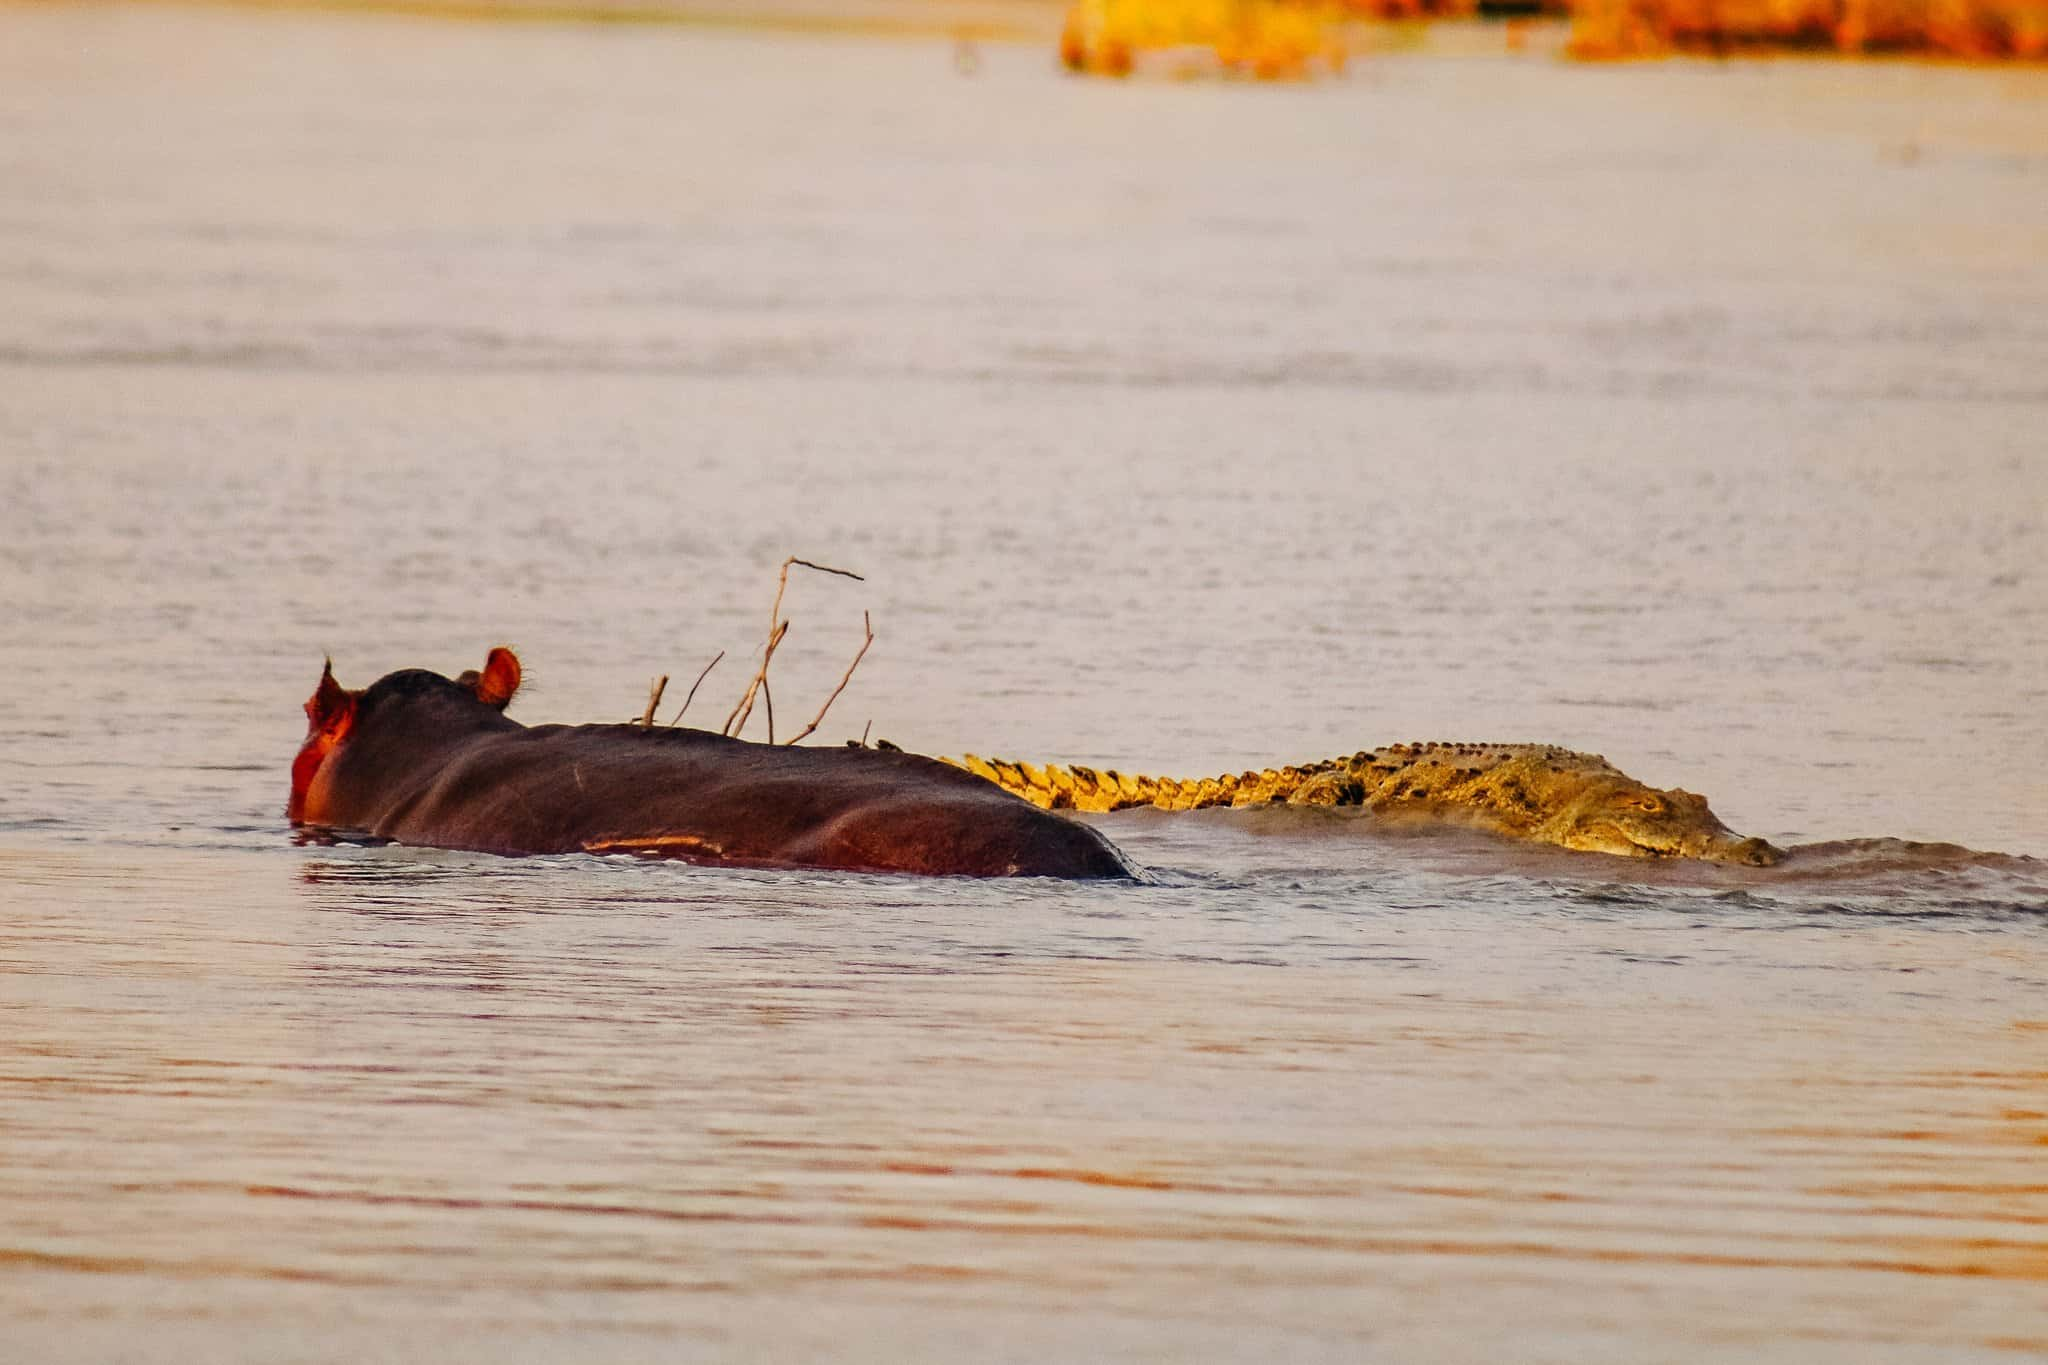 The Start of our First African Safari - Hippo Fighting a Crocodile